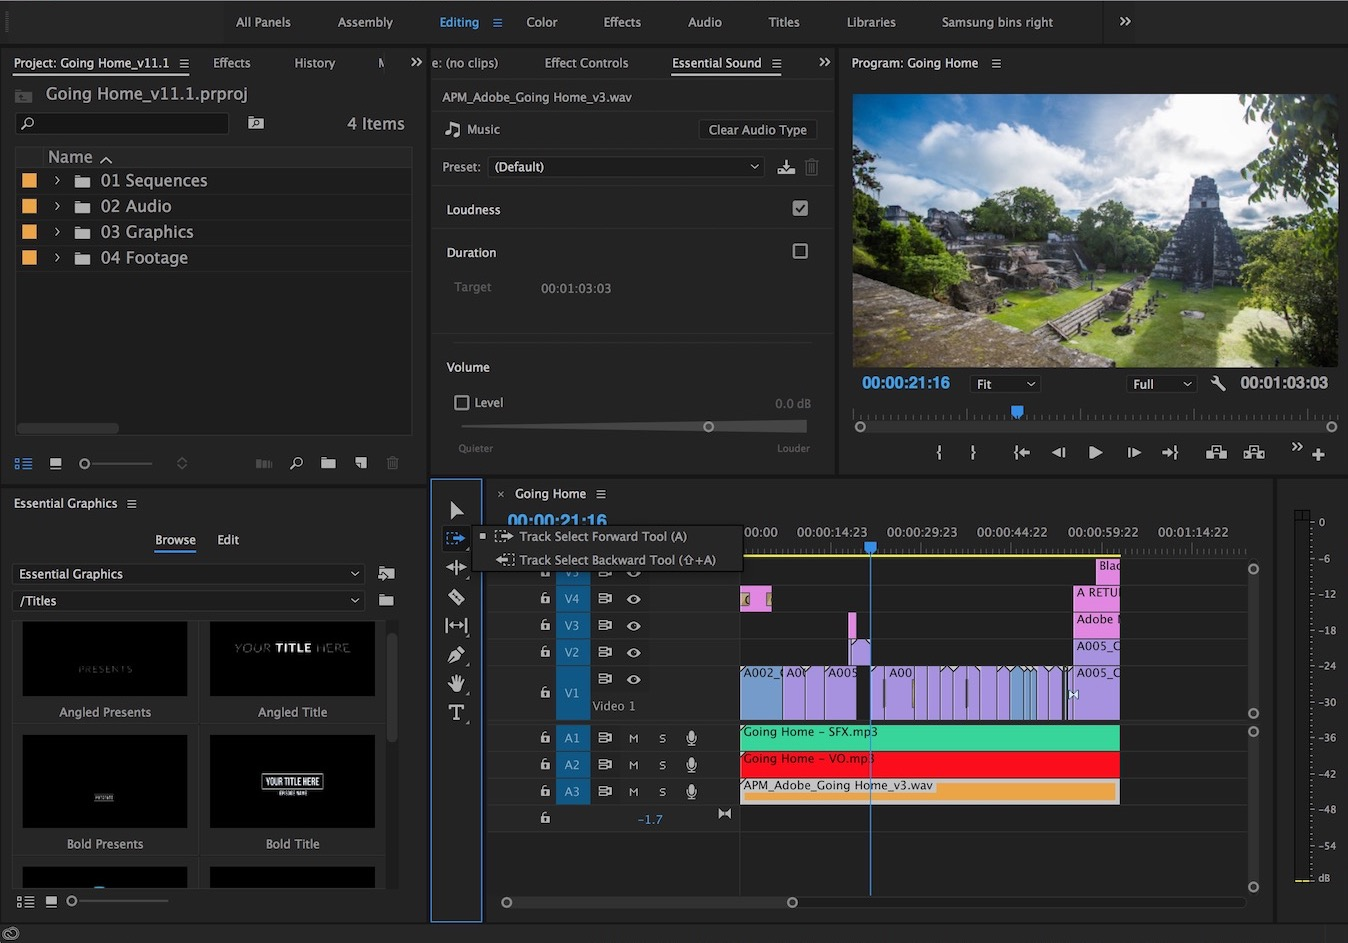 premiere pro cc 2018 download mac